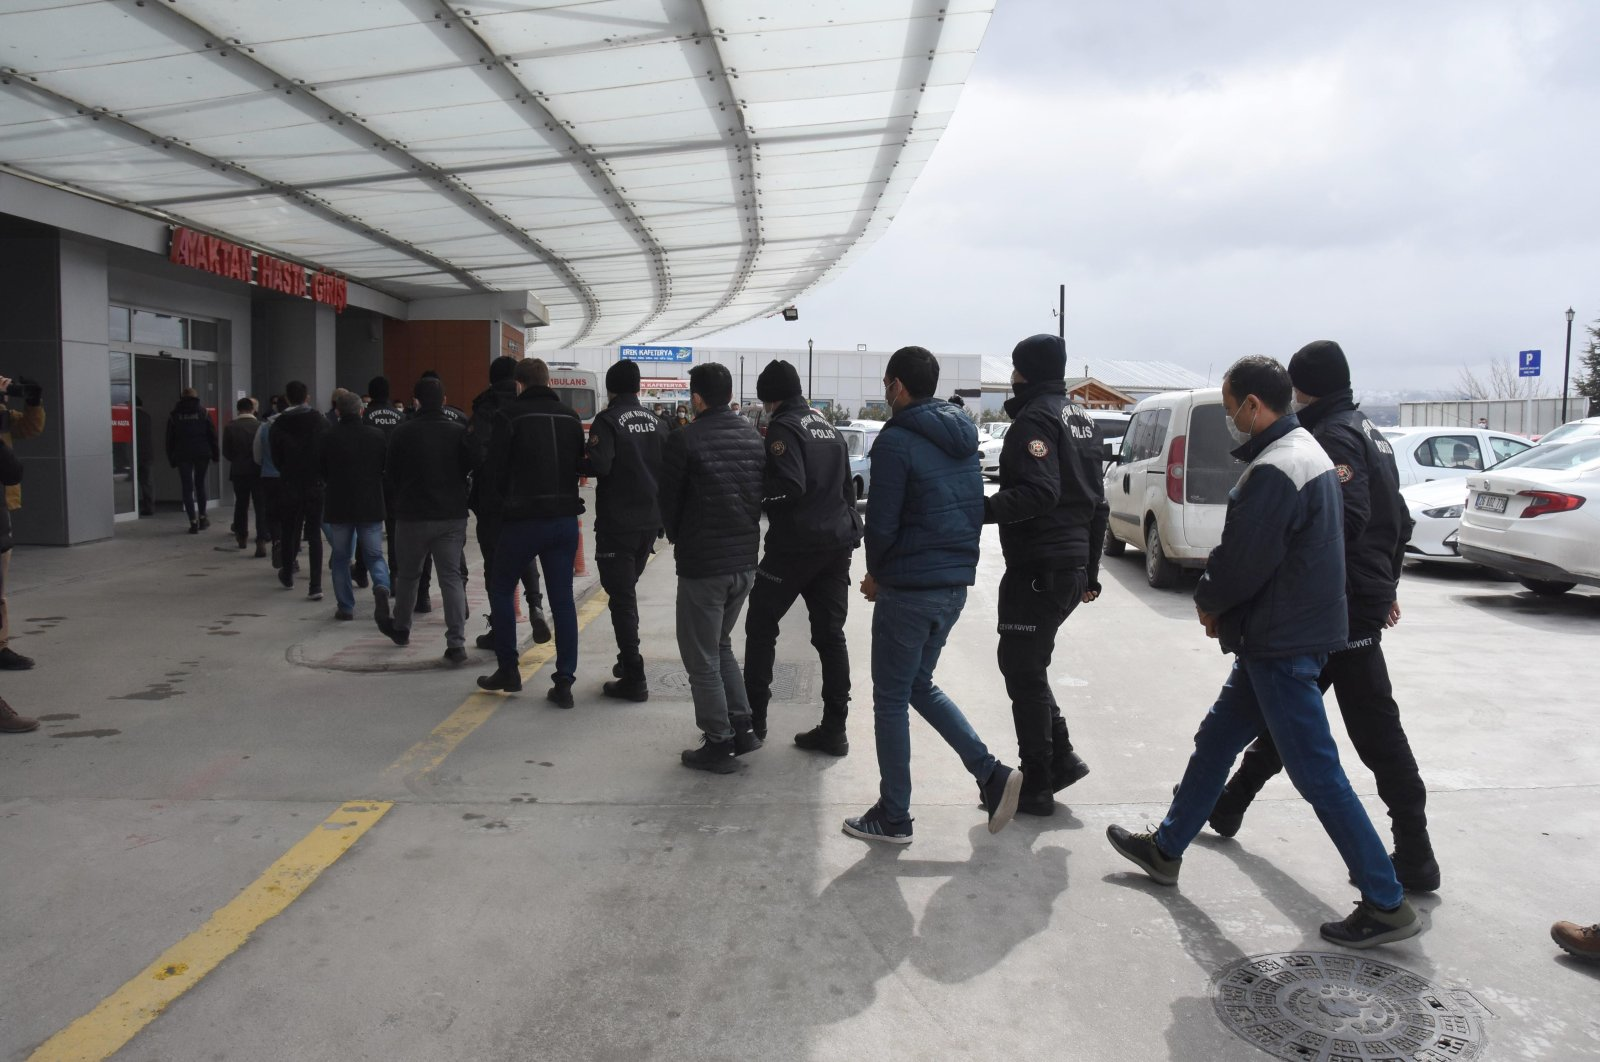 Police escort a group of FETÖ suspects after they were captured in Eskişehir, central Turkey, March 25, 2021. (DHA PHOTO)